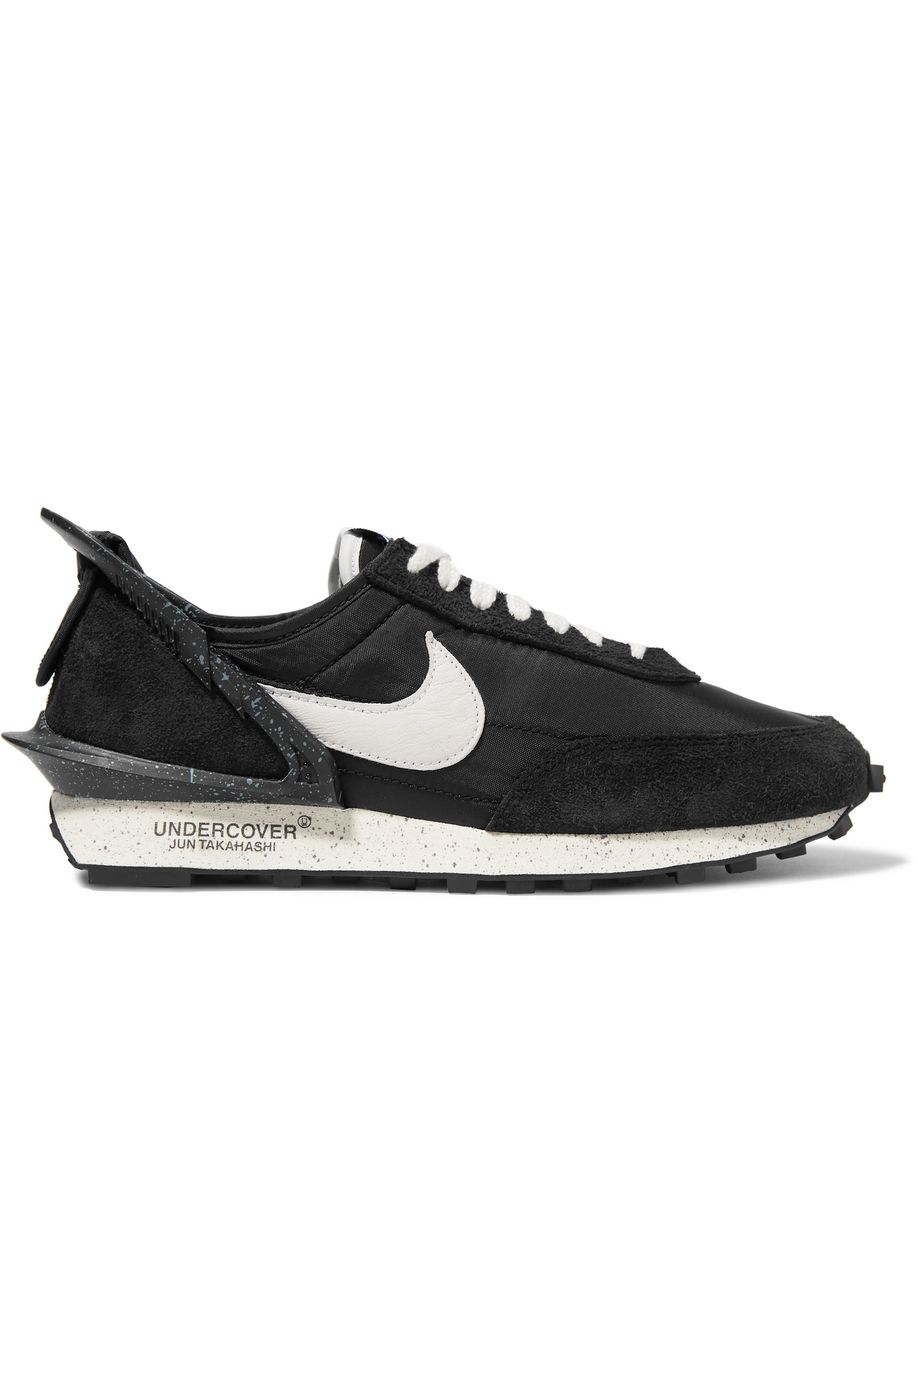 Nike + Undercover Daybreak shell, suede and leather sneakers